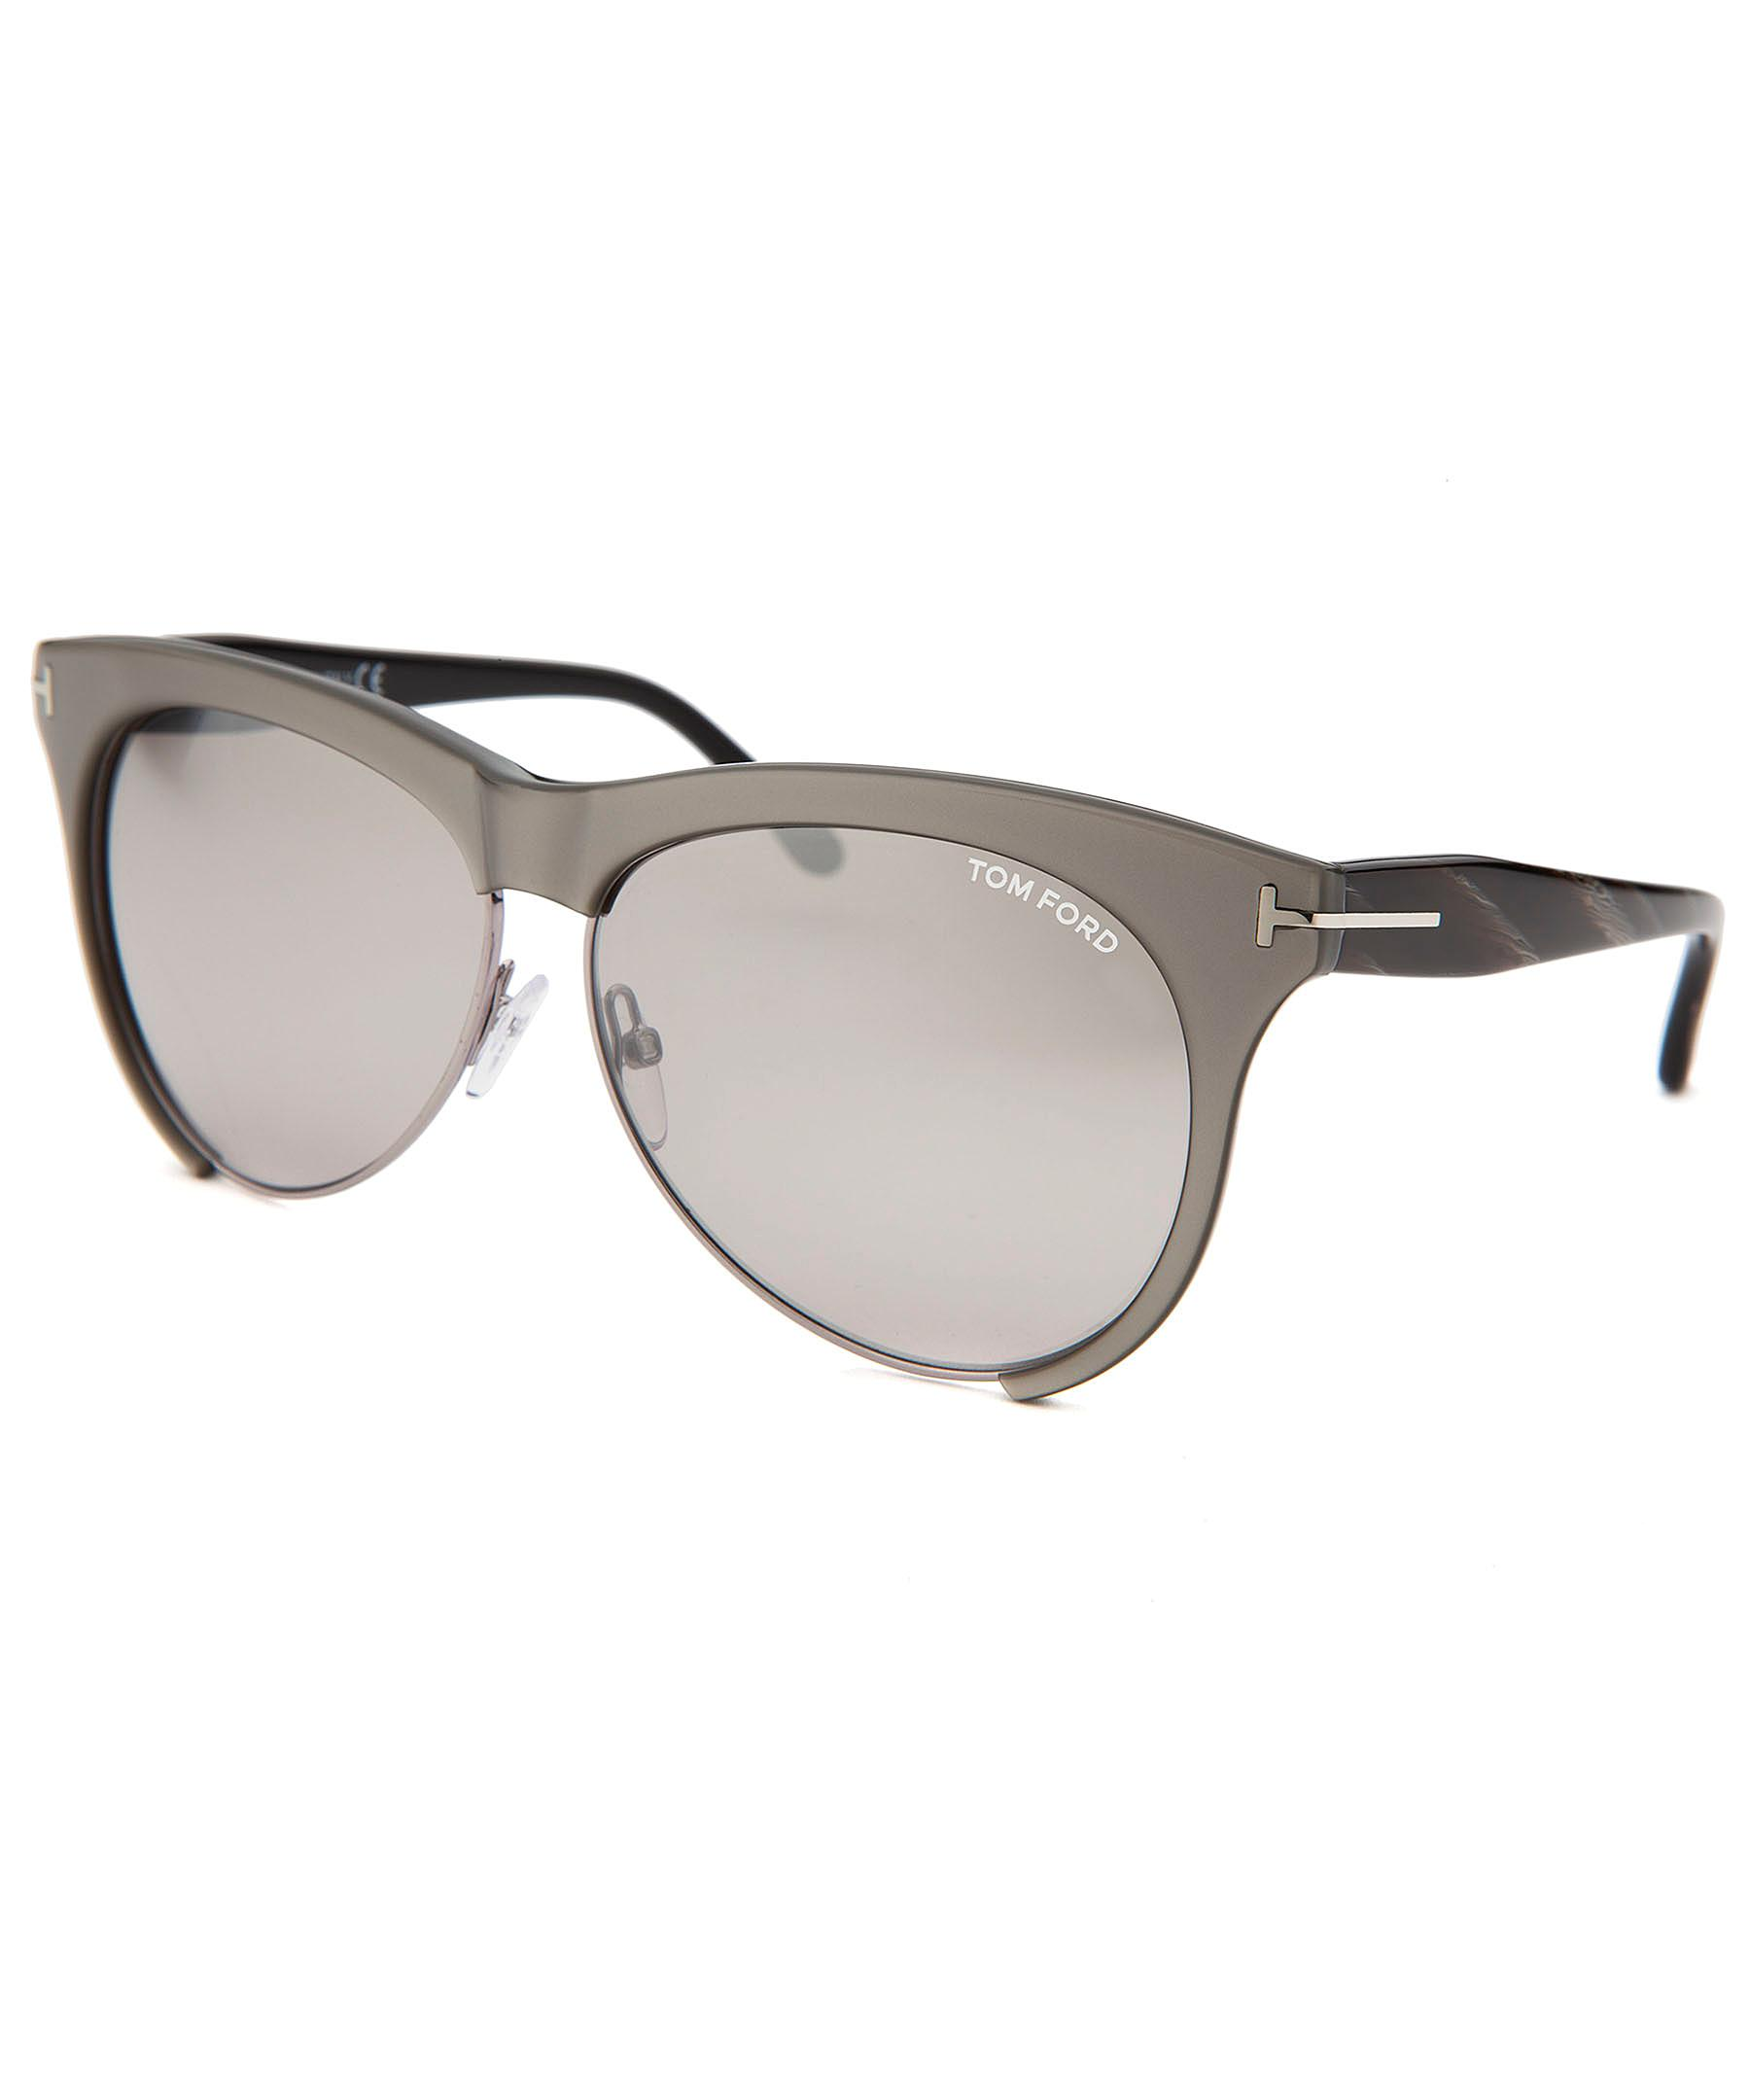 257e6f8e5892 Lyst - Tom Ford Women s Leona Round Grey And Silver-tone Sunglasses ...